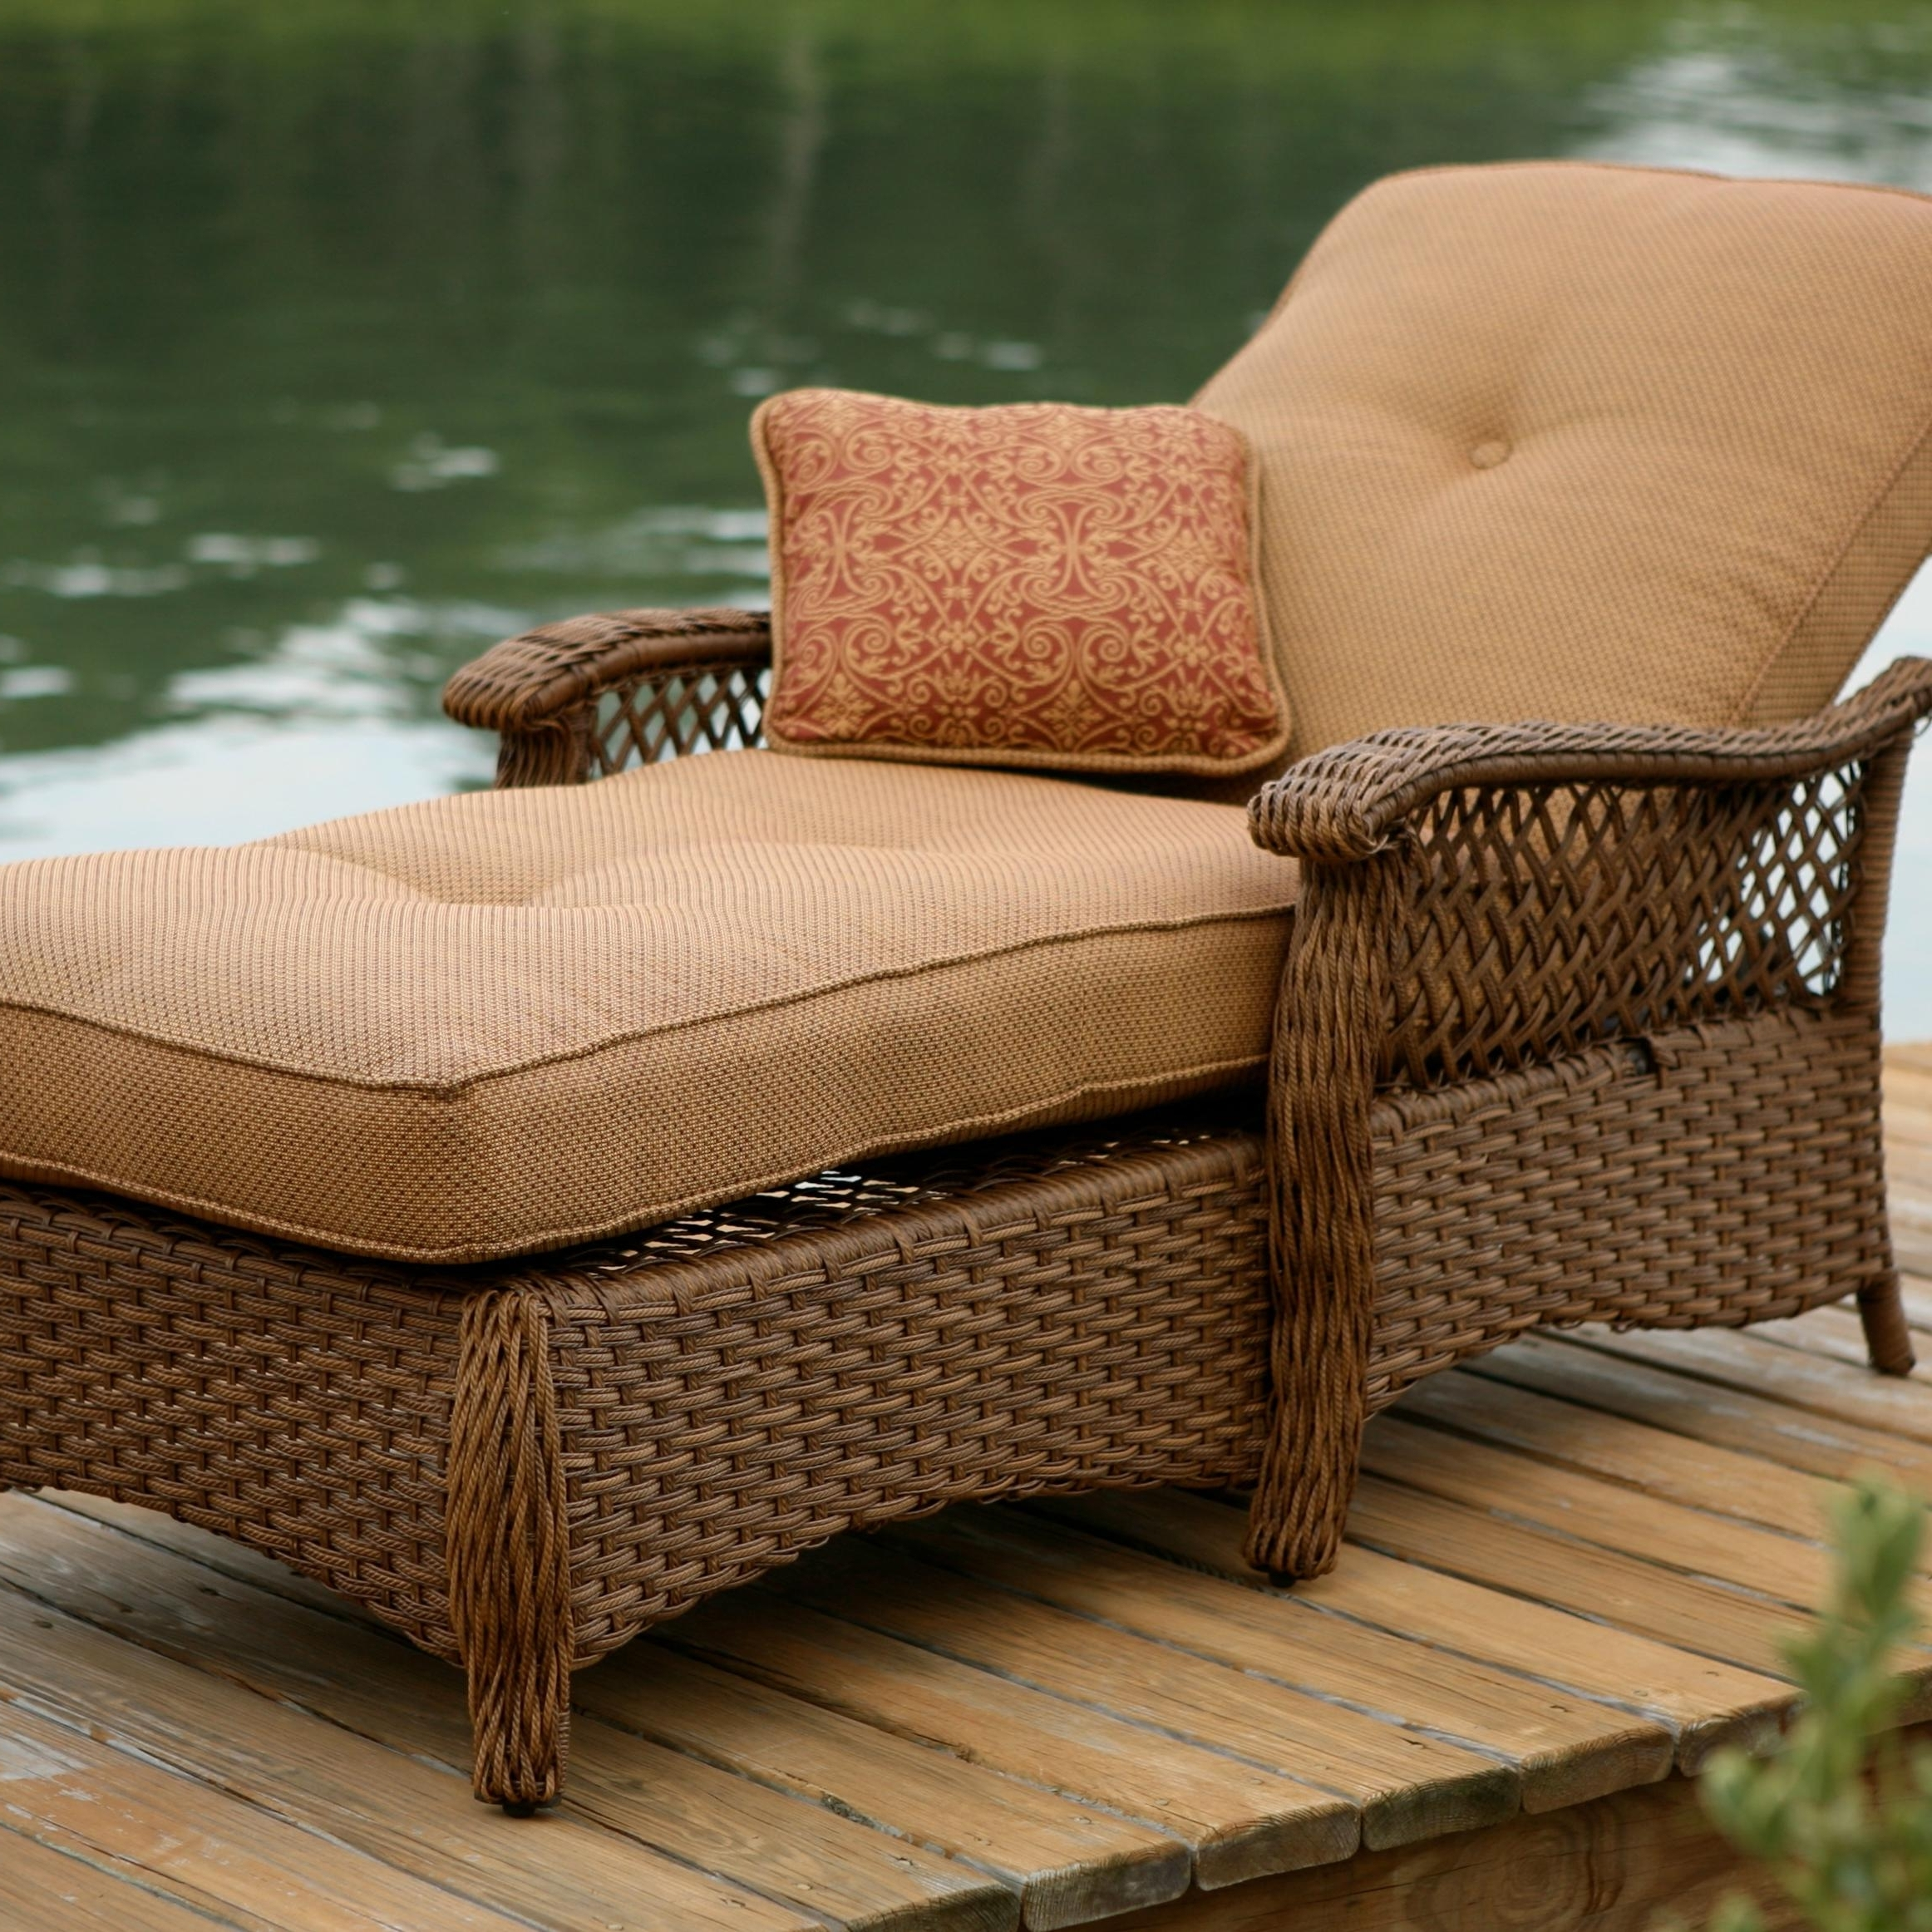 Outdoor Wicker Chaise Lounge Chairs • Lounge Chairs Ideas With Fashionable Wicker Chaises (View 6 of 15)